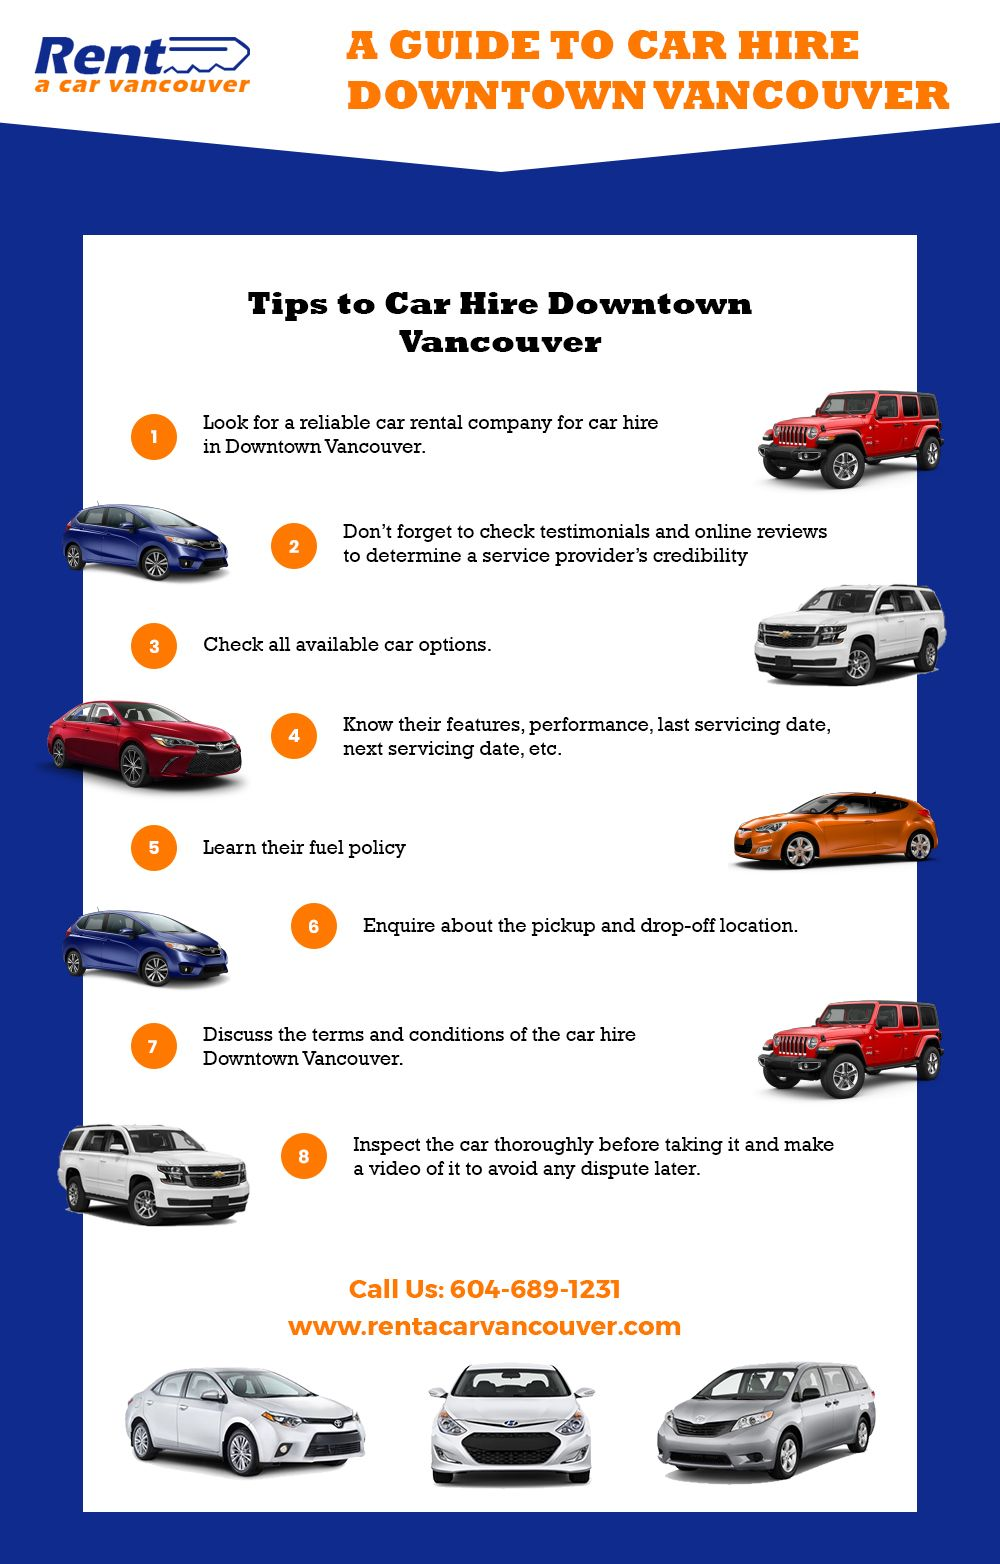 Here Are Some Useful Tips For You To Car Hire In Downtown